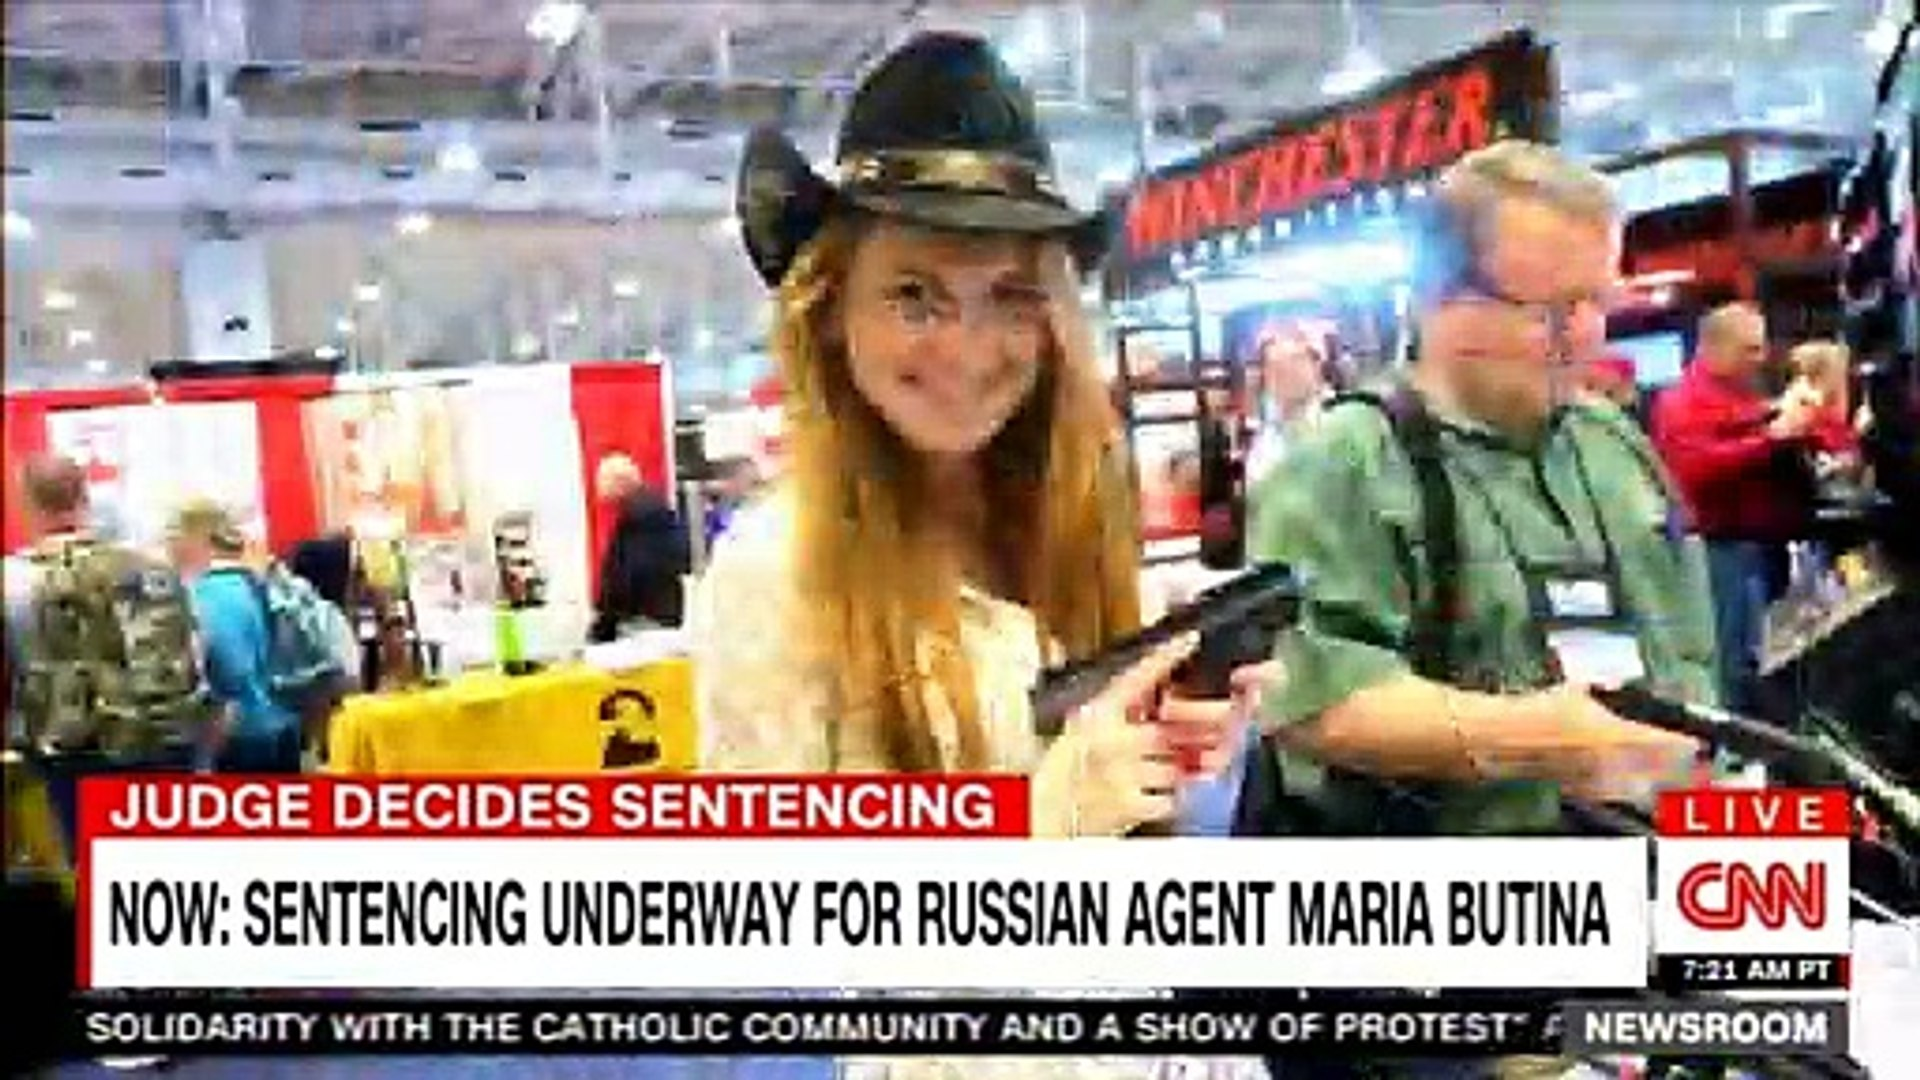 Sentencing underway for Russian agent Maria Butina. #Russia #News #Breaking #Justice